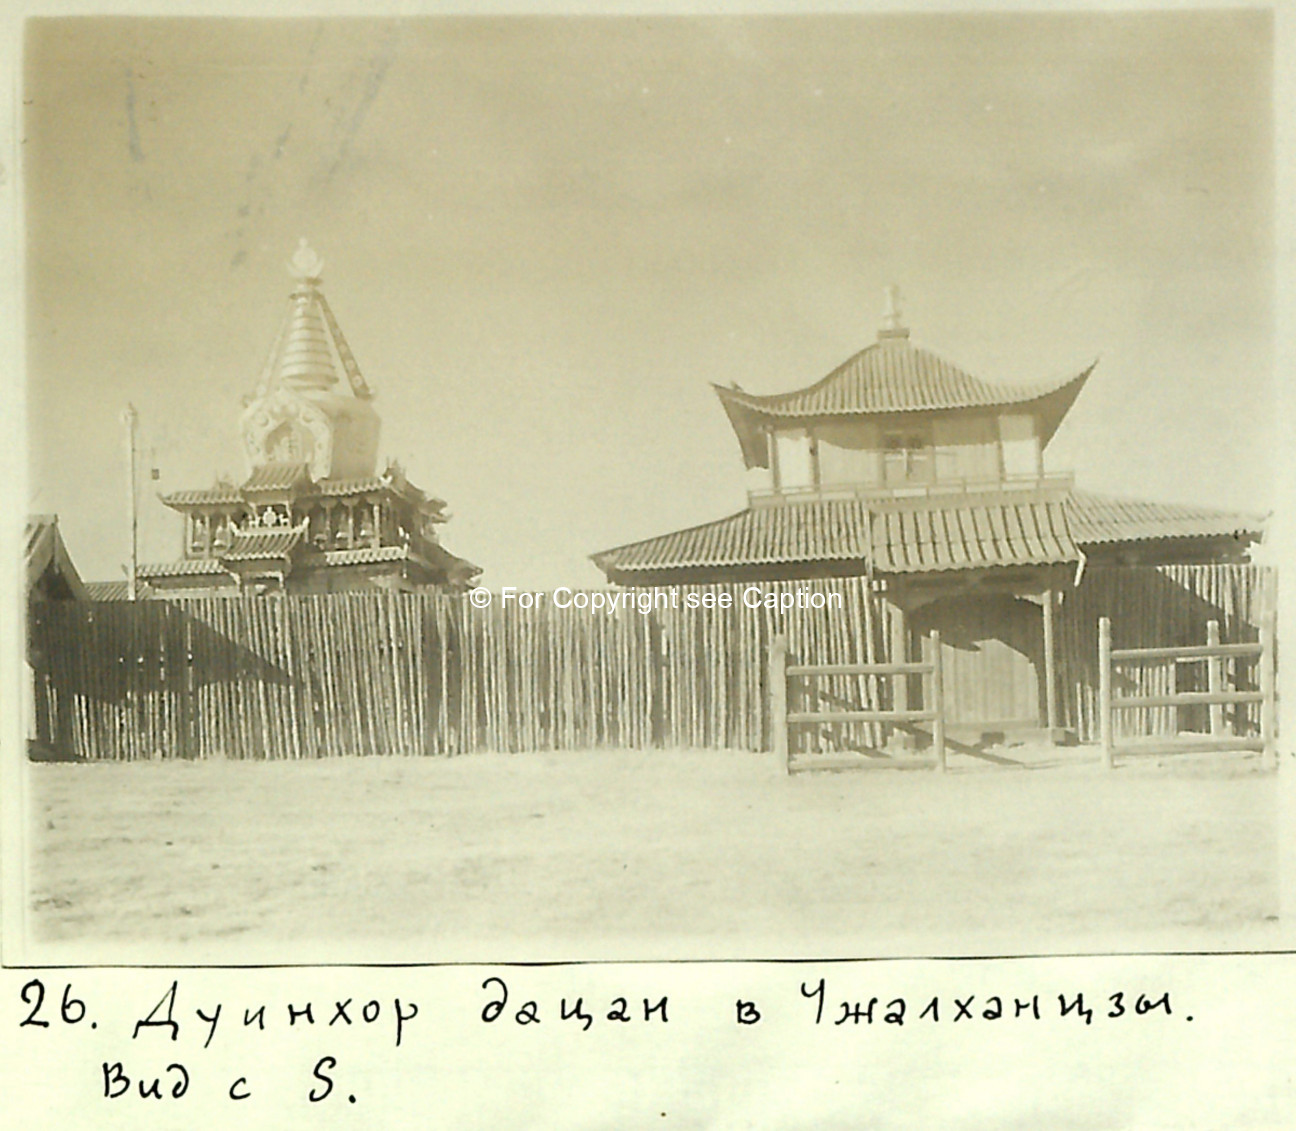 Düinkhor datsan and a stupa. Photo taken by Kondratyev in the 1920s courtesy S Chuluun